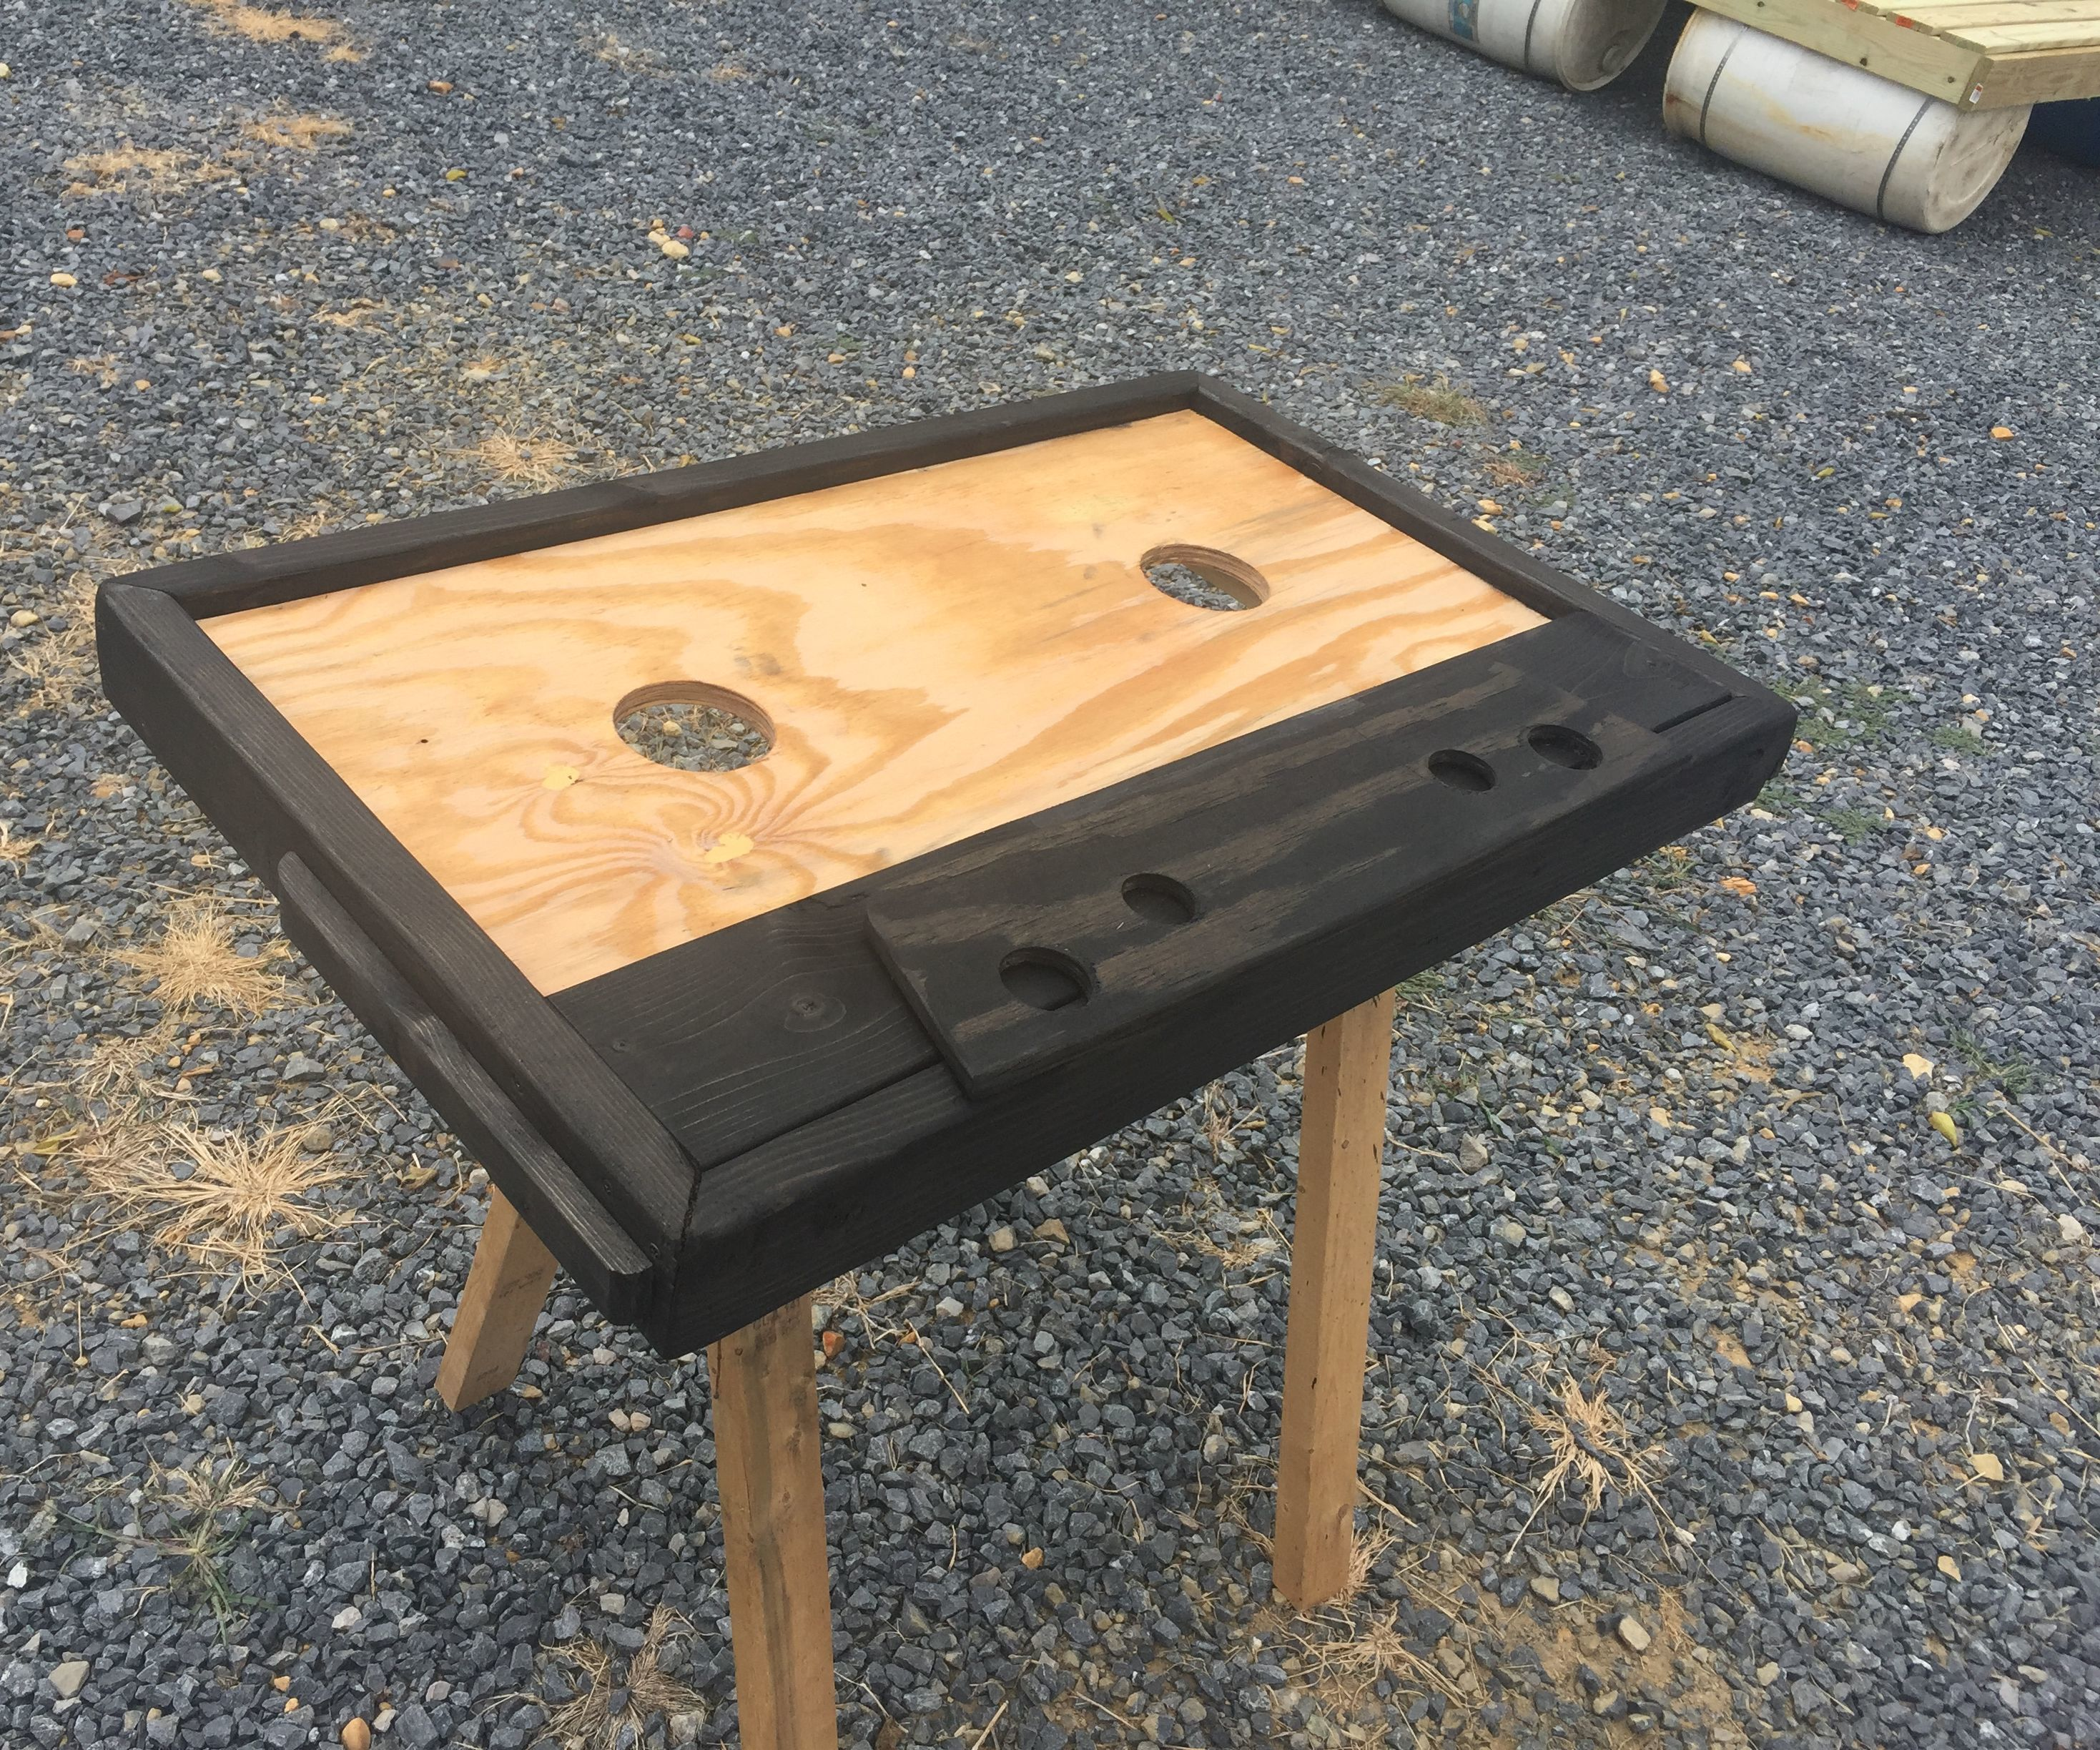 Retro Wooden Cassette Tape Coffee Table (for under $50!)